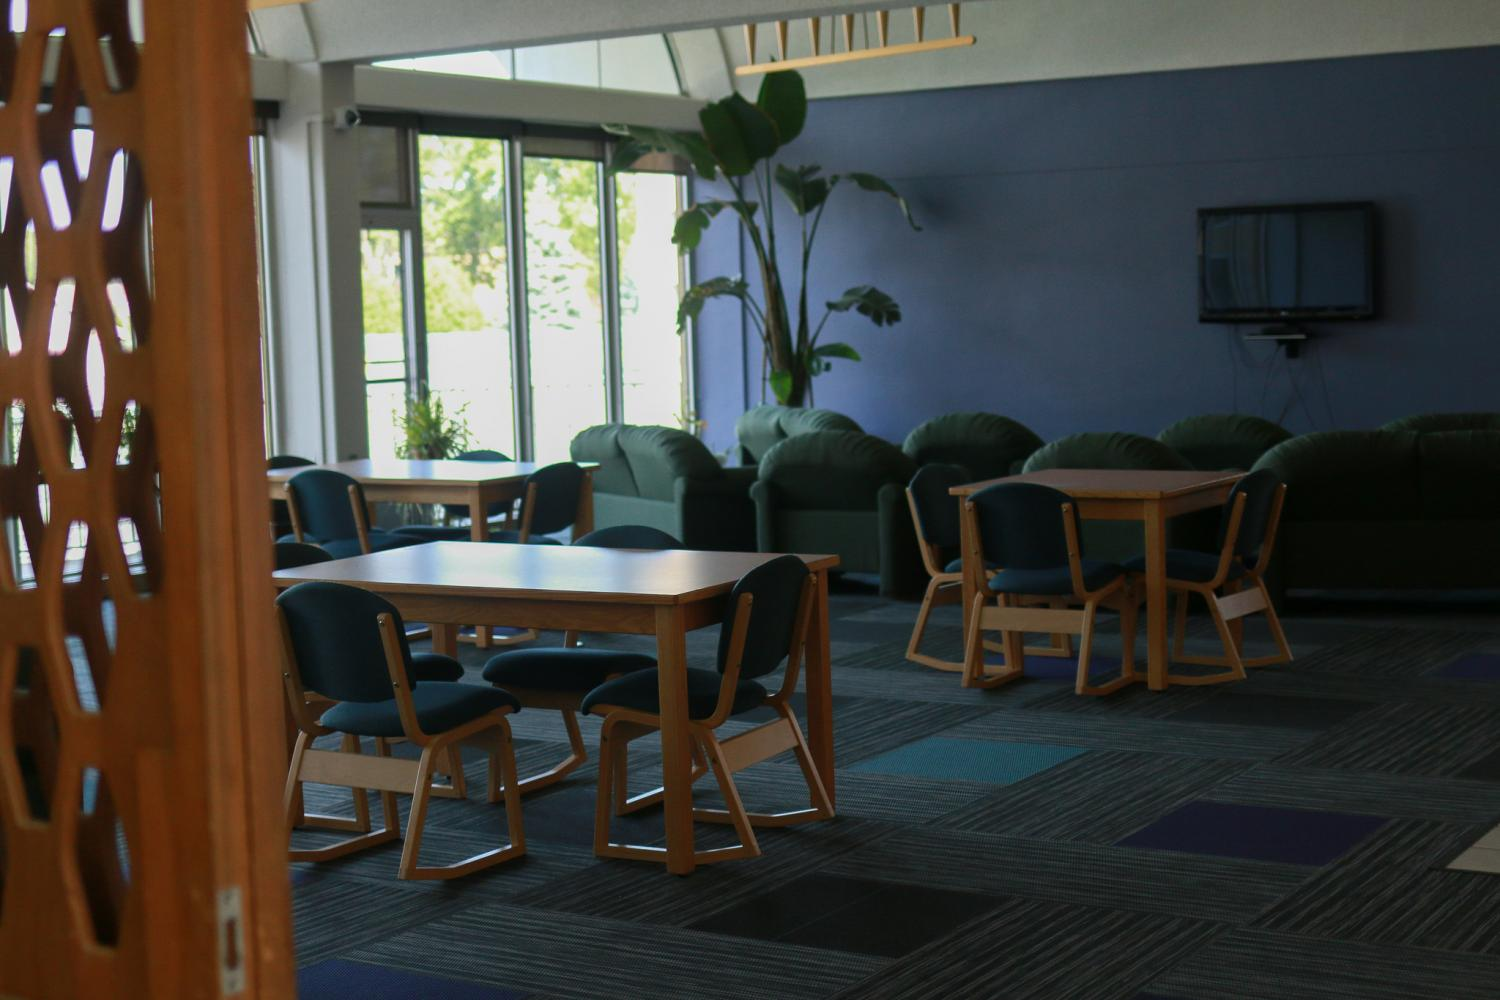 The lounges in Maria have incorporated the house colors in their new paint and carpet. Blue-green is in the first and second floor lounges for Eridanus house, and purple is in the third and fourth floors for Octans house. Students say it makes the dorm feel more like home.